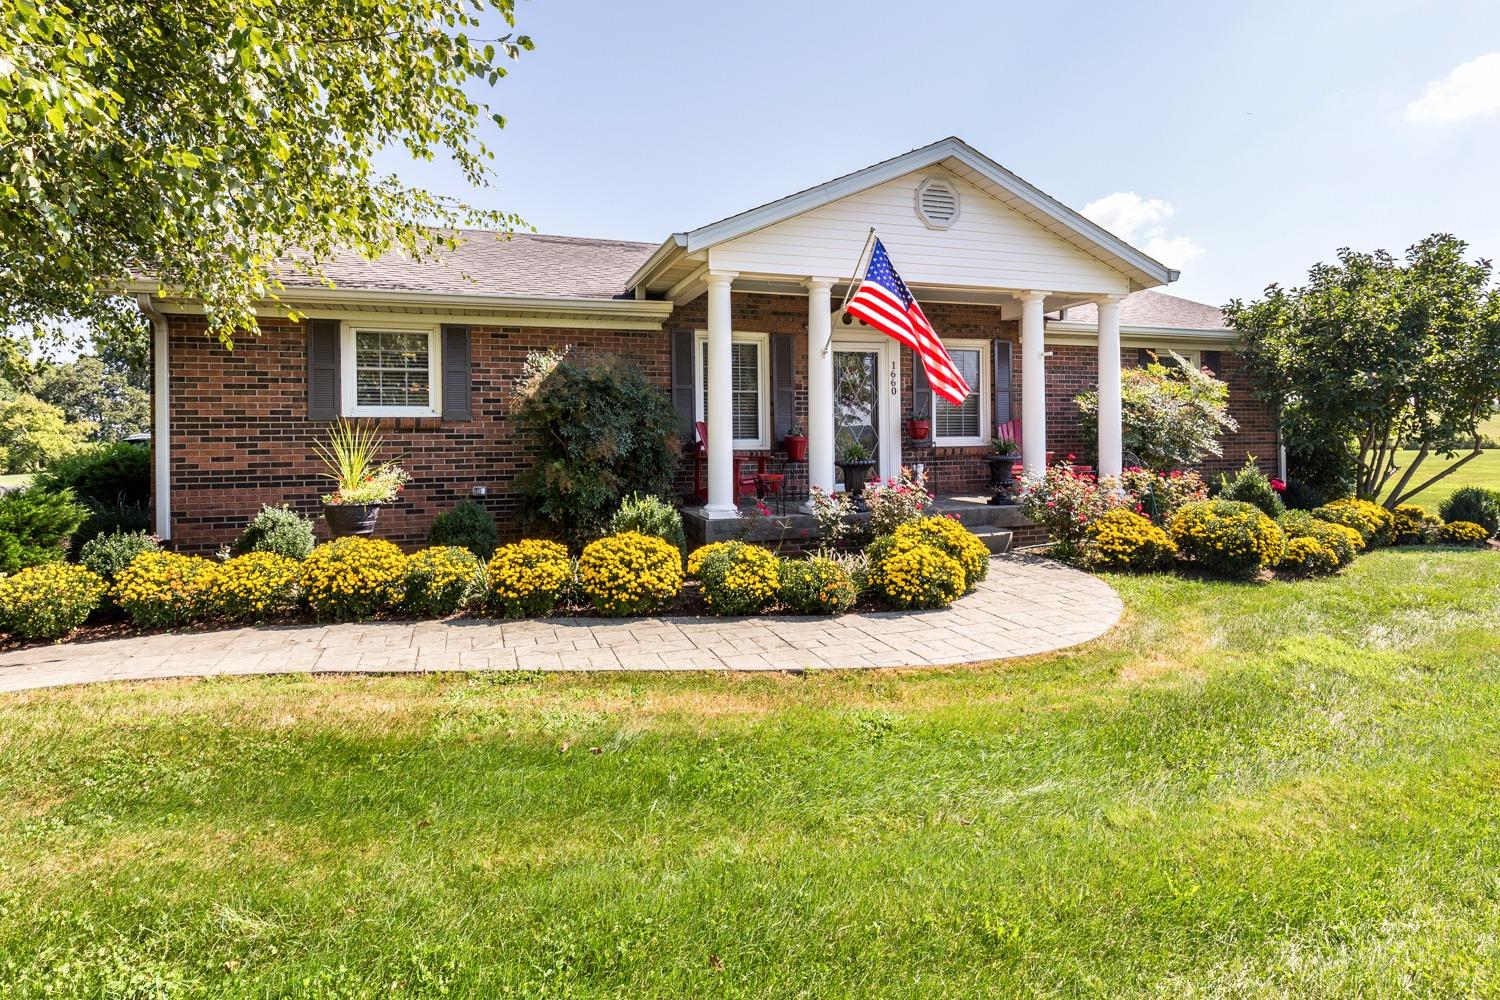 Only%2045%20minutes%20from%20Lexington,%20this%20updated%20brick%20ranch%20on%20a%20basement%20comes%20complete%20with%20an%20in-ground%20pool,%20apartment%20above%20heated%202-car%20garage,%20custom%20tree%20house,%20rustic%20cabin%20and%20a%20foam%20insulated,%20heated%20and%20cooled%20metal%20building%20complete%20with%20plumbing%20and%20offices%20(36%20x%2047).%20%20The%20pond%20is%20overstocked%20with%20large%20fish.